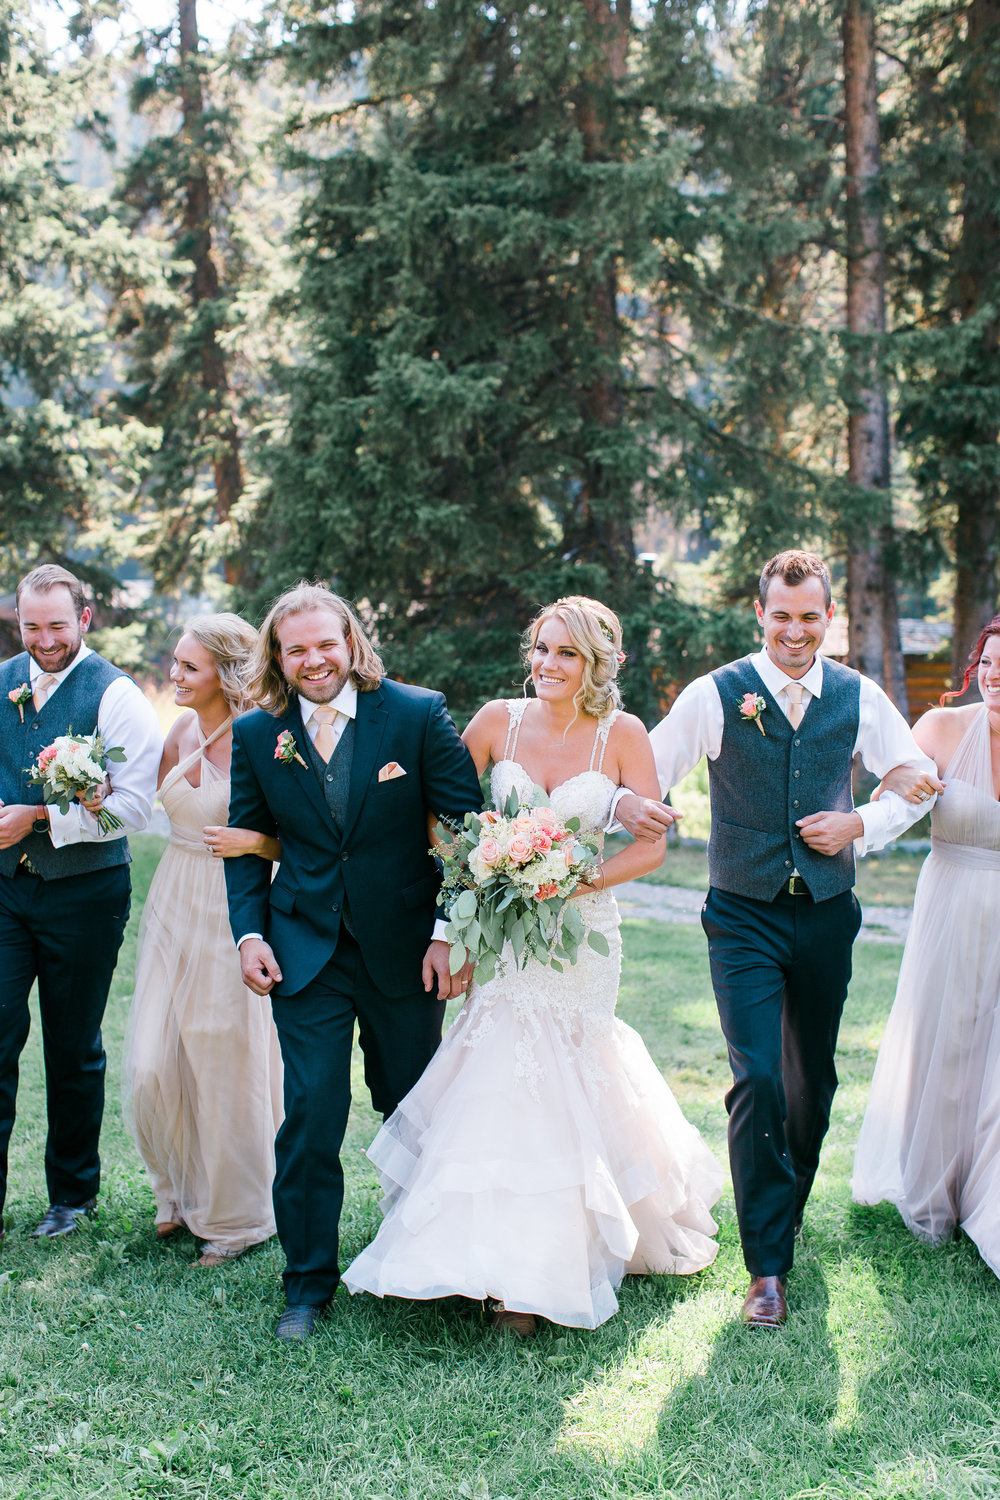 Wedding party with black suits and neutral bridesmaid dresses walking and laughing Big Sky Montana Lone Mountain Ranch wedding Minnesota wedding photography Mallory Kiesow Photography